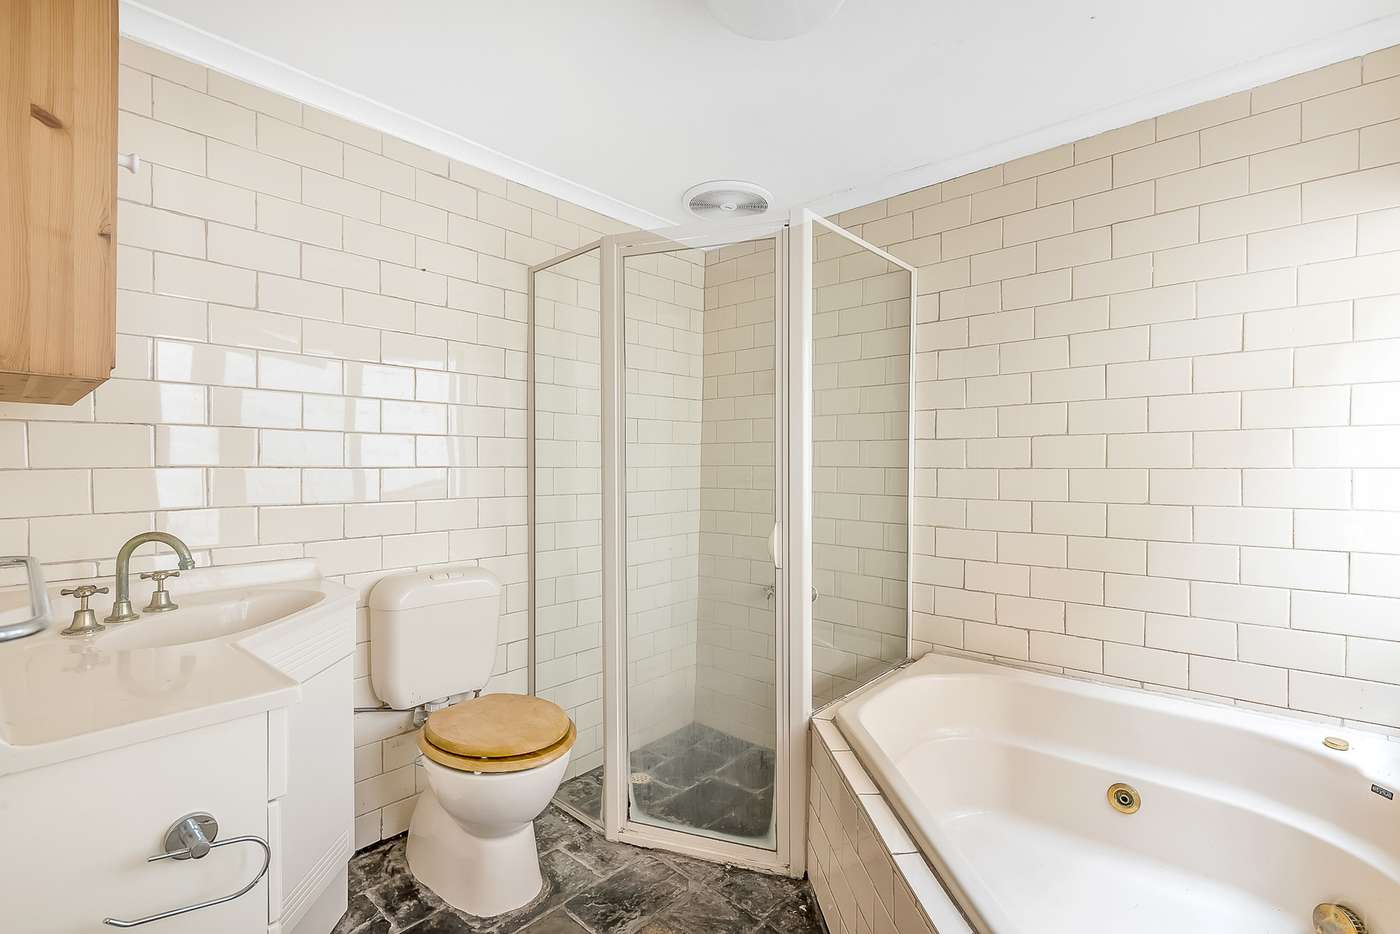 Seventh view of Homely house listing, 22 Hobsons Place, Adelaide SA 5000